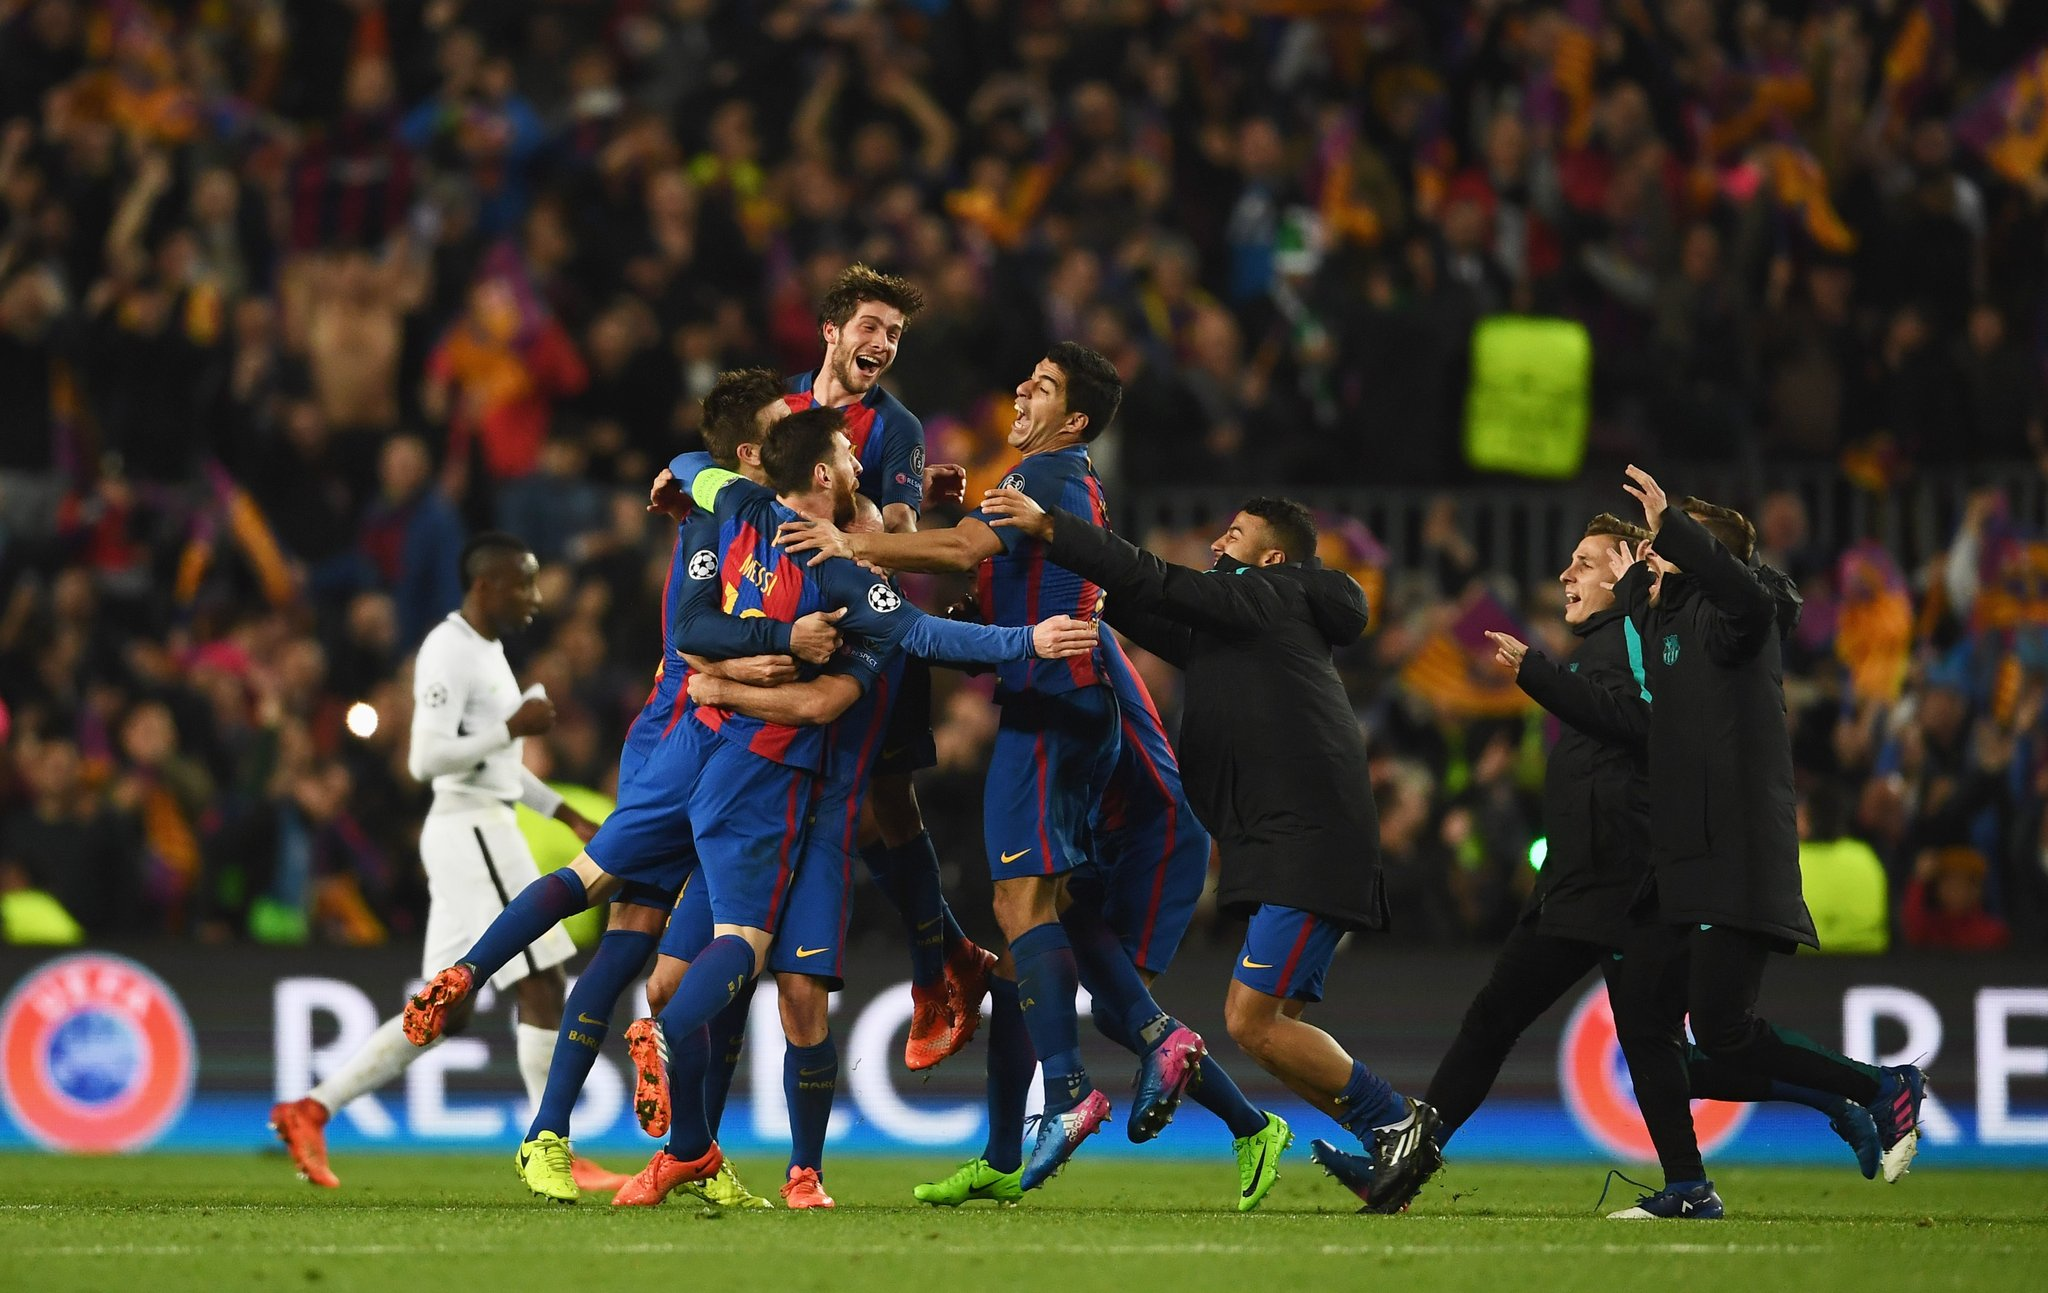 Oliseh: I'll Tell My Grandkids About Historic Barcelona Miracle